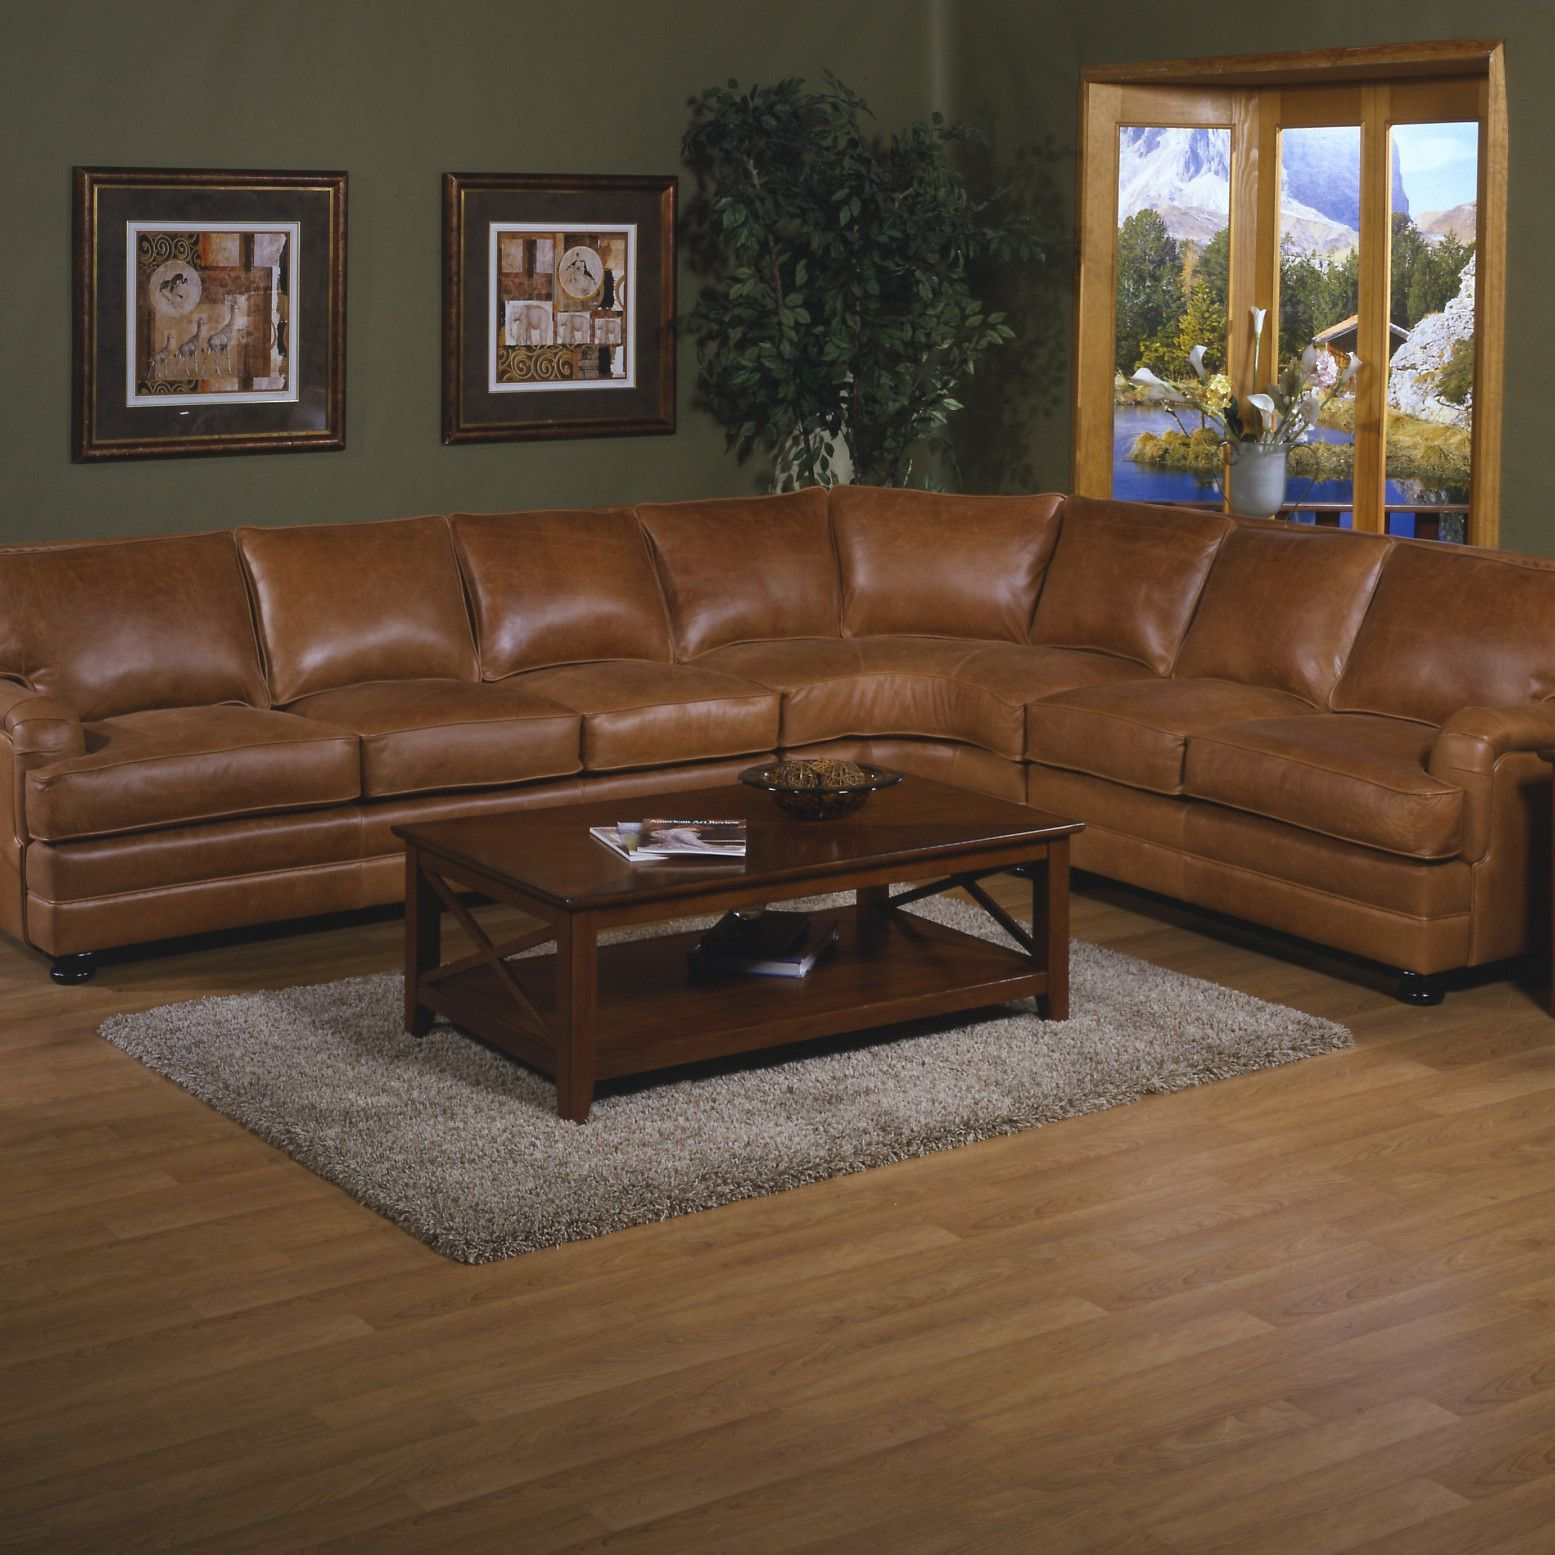 Omnia Furniture Pantera Leather Right Facing Sectional Sectional Sofa Sectional Sofa Couch Leather Sectional